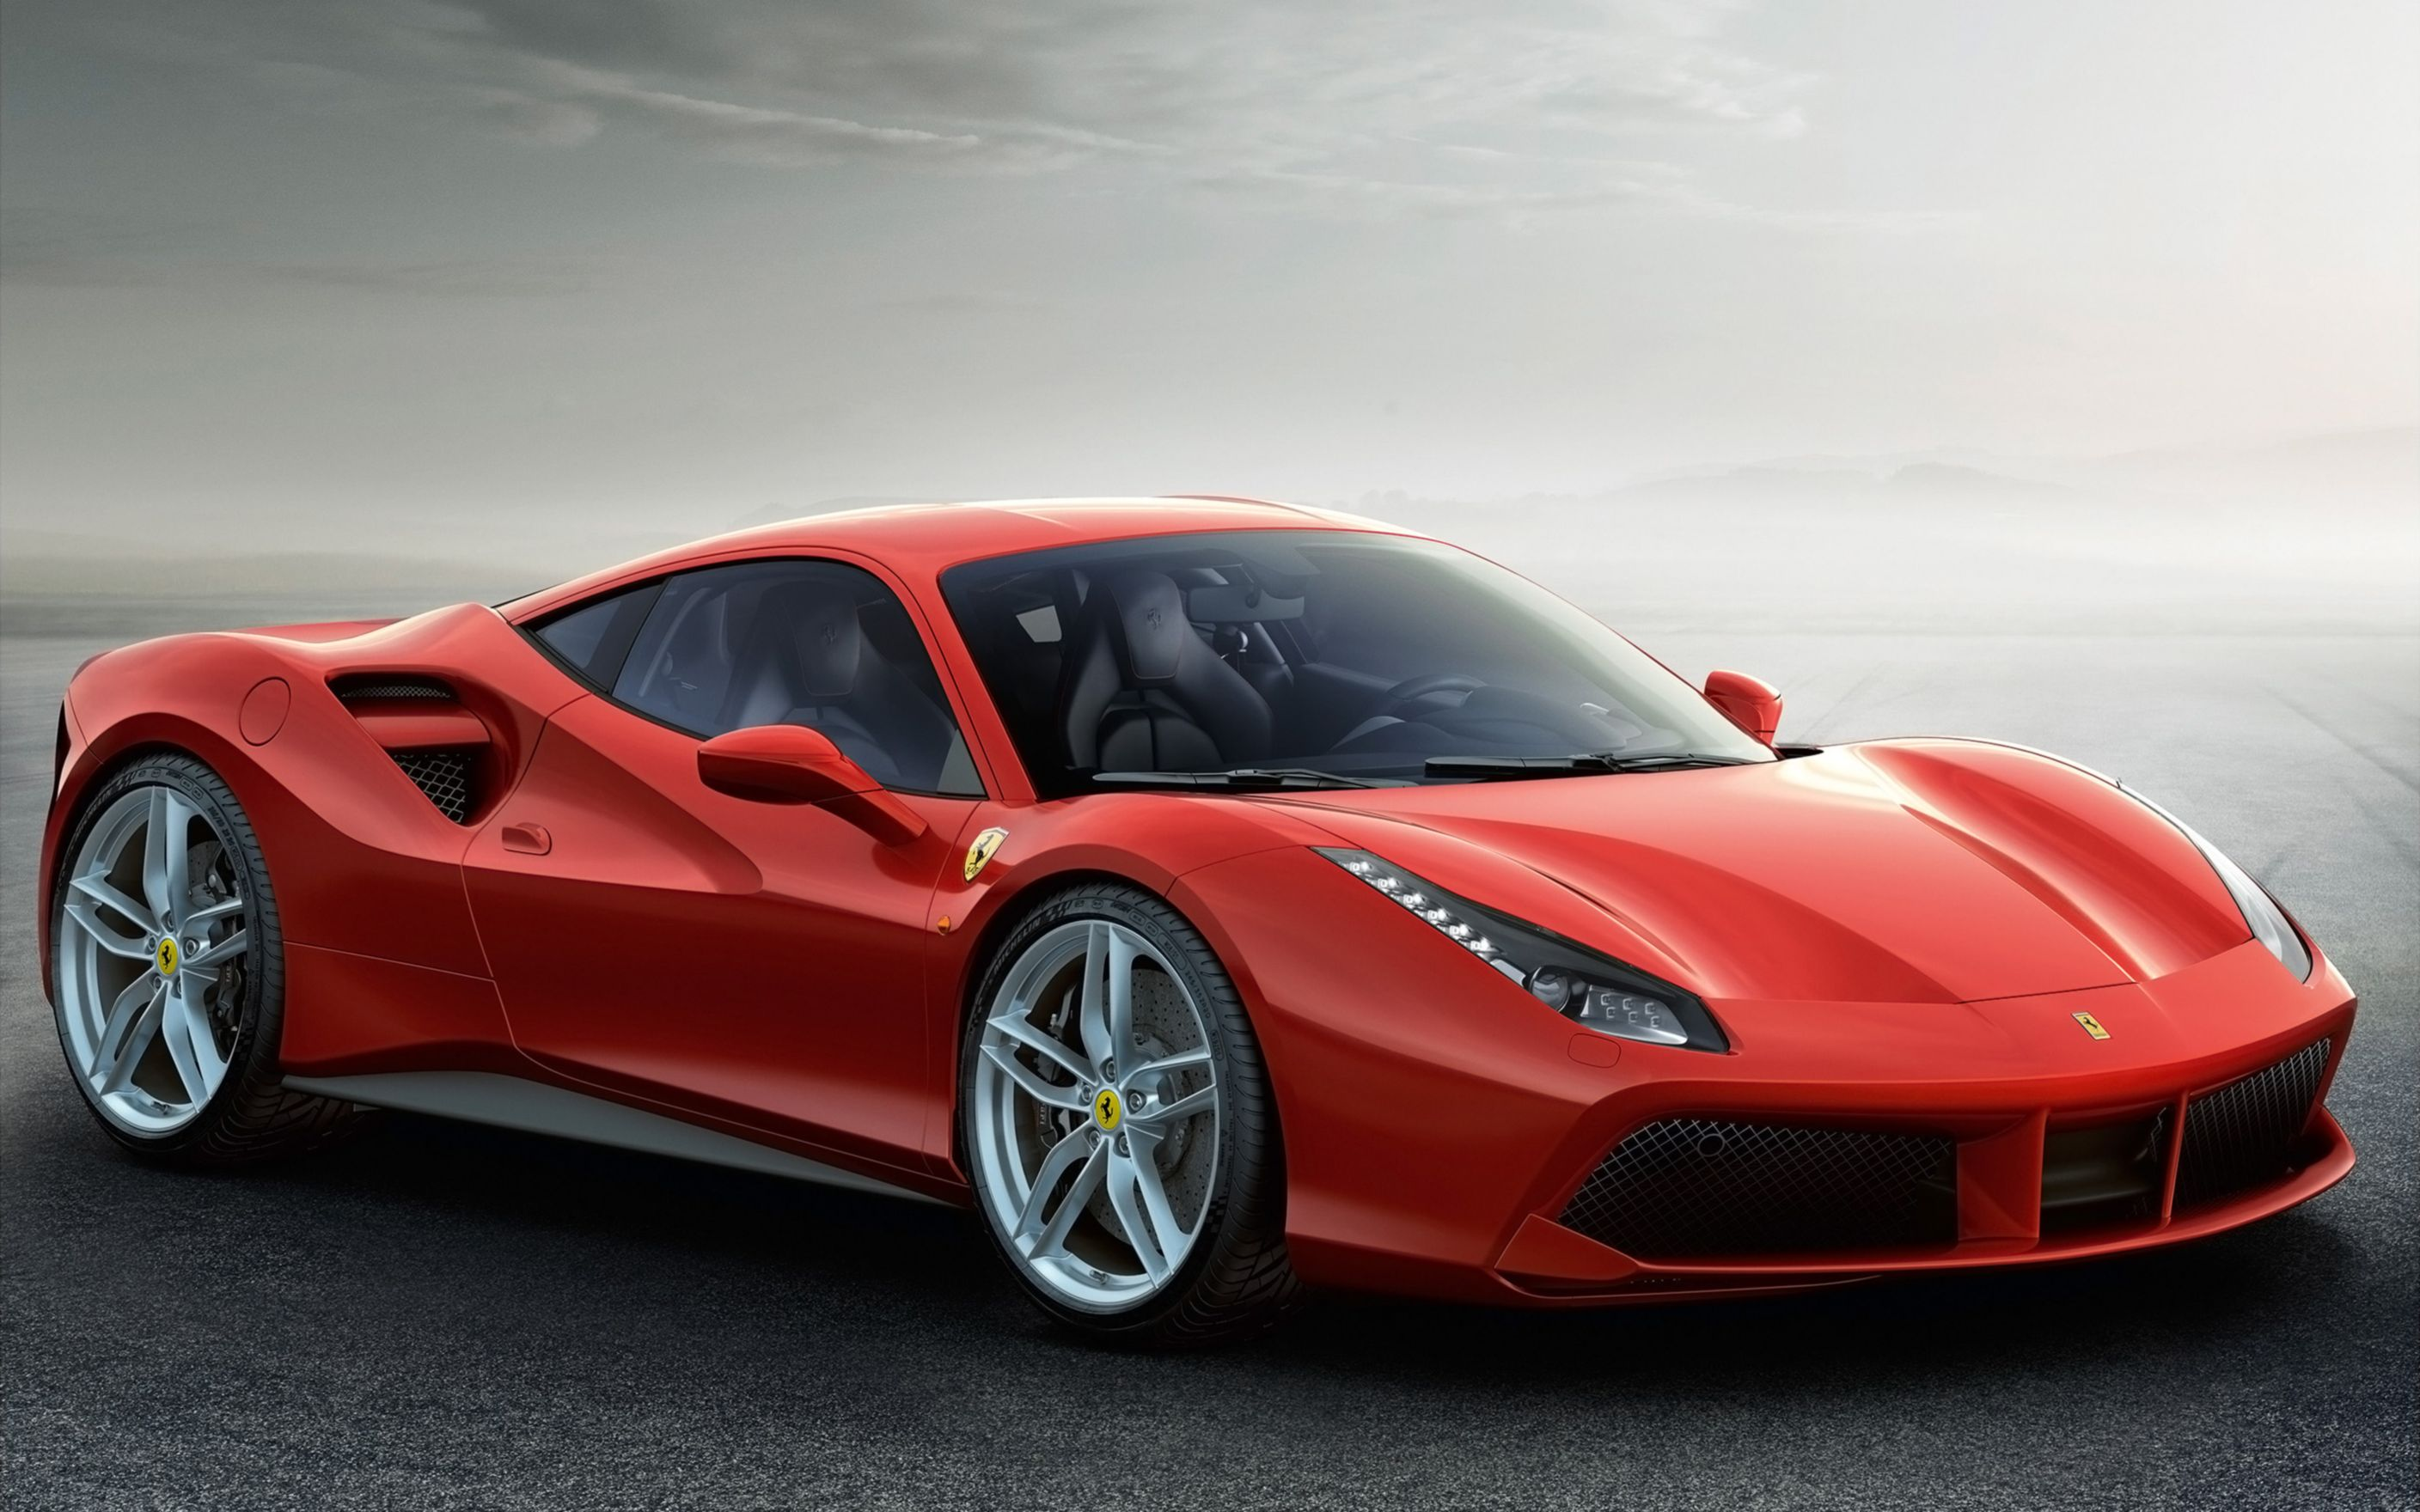 Download free HD 2015 Ferrari 488 Gtb Wide Wallpaper, image